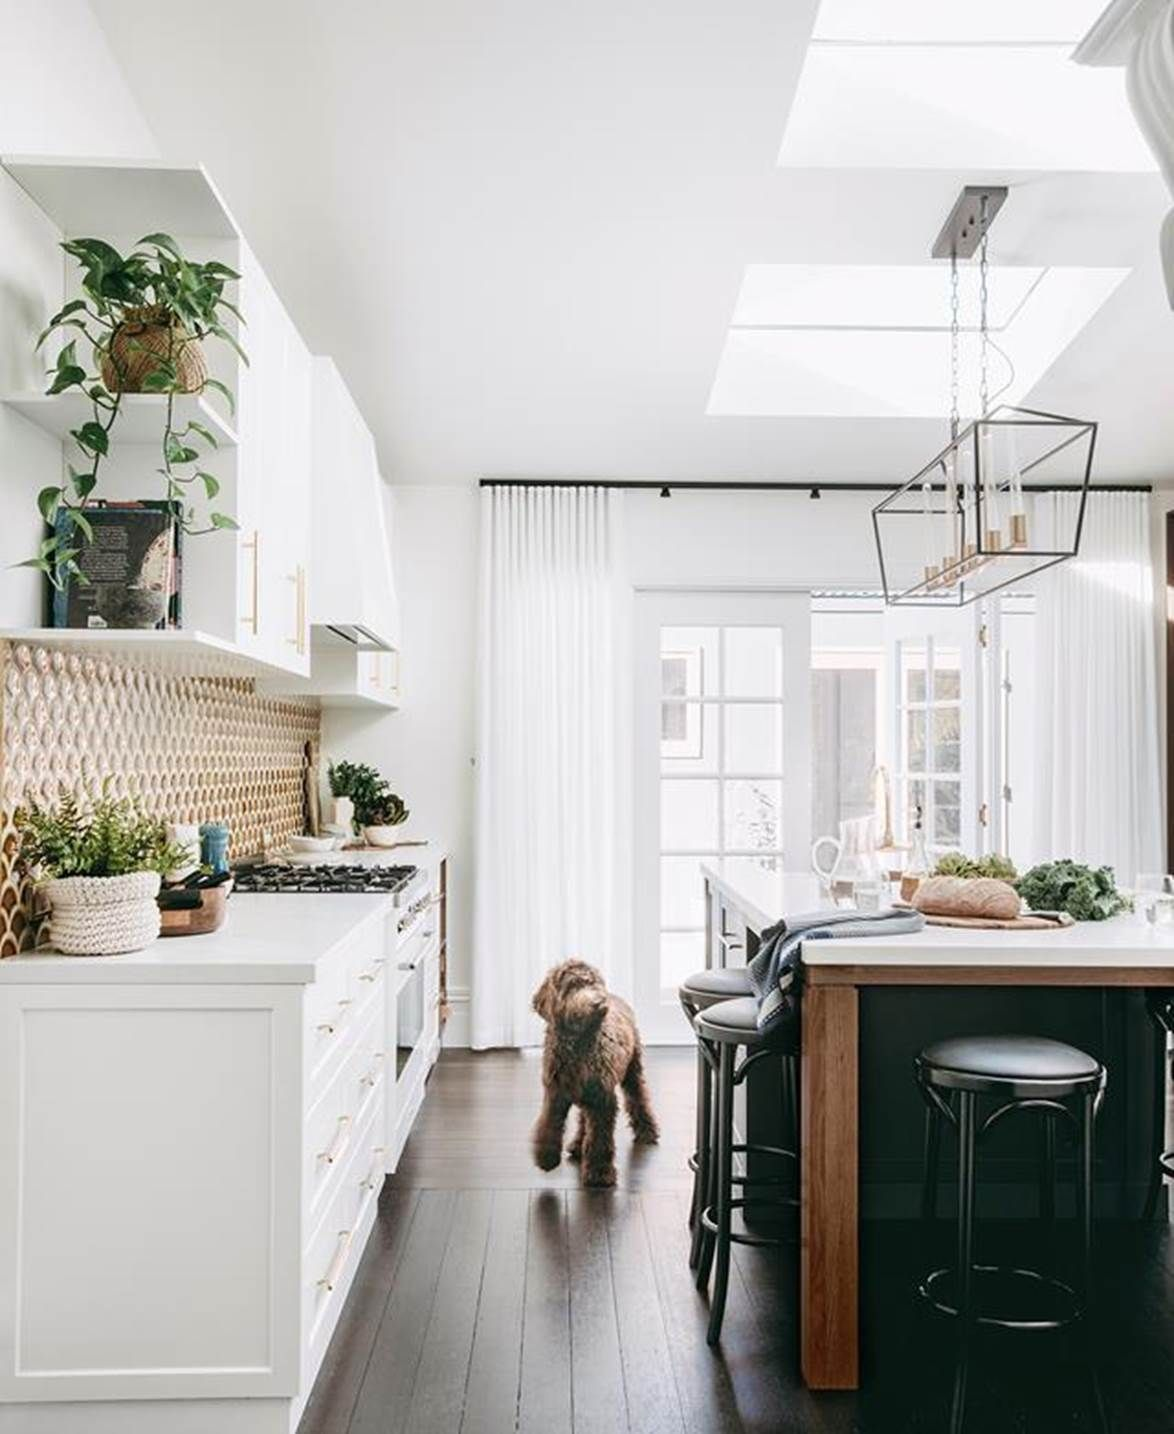 25 Captivating Ideas For Kitchens With Skylights: 25 Kitchen Design Ideas With A Point Of Difference